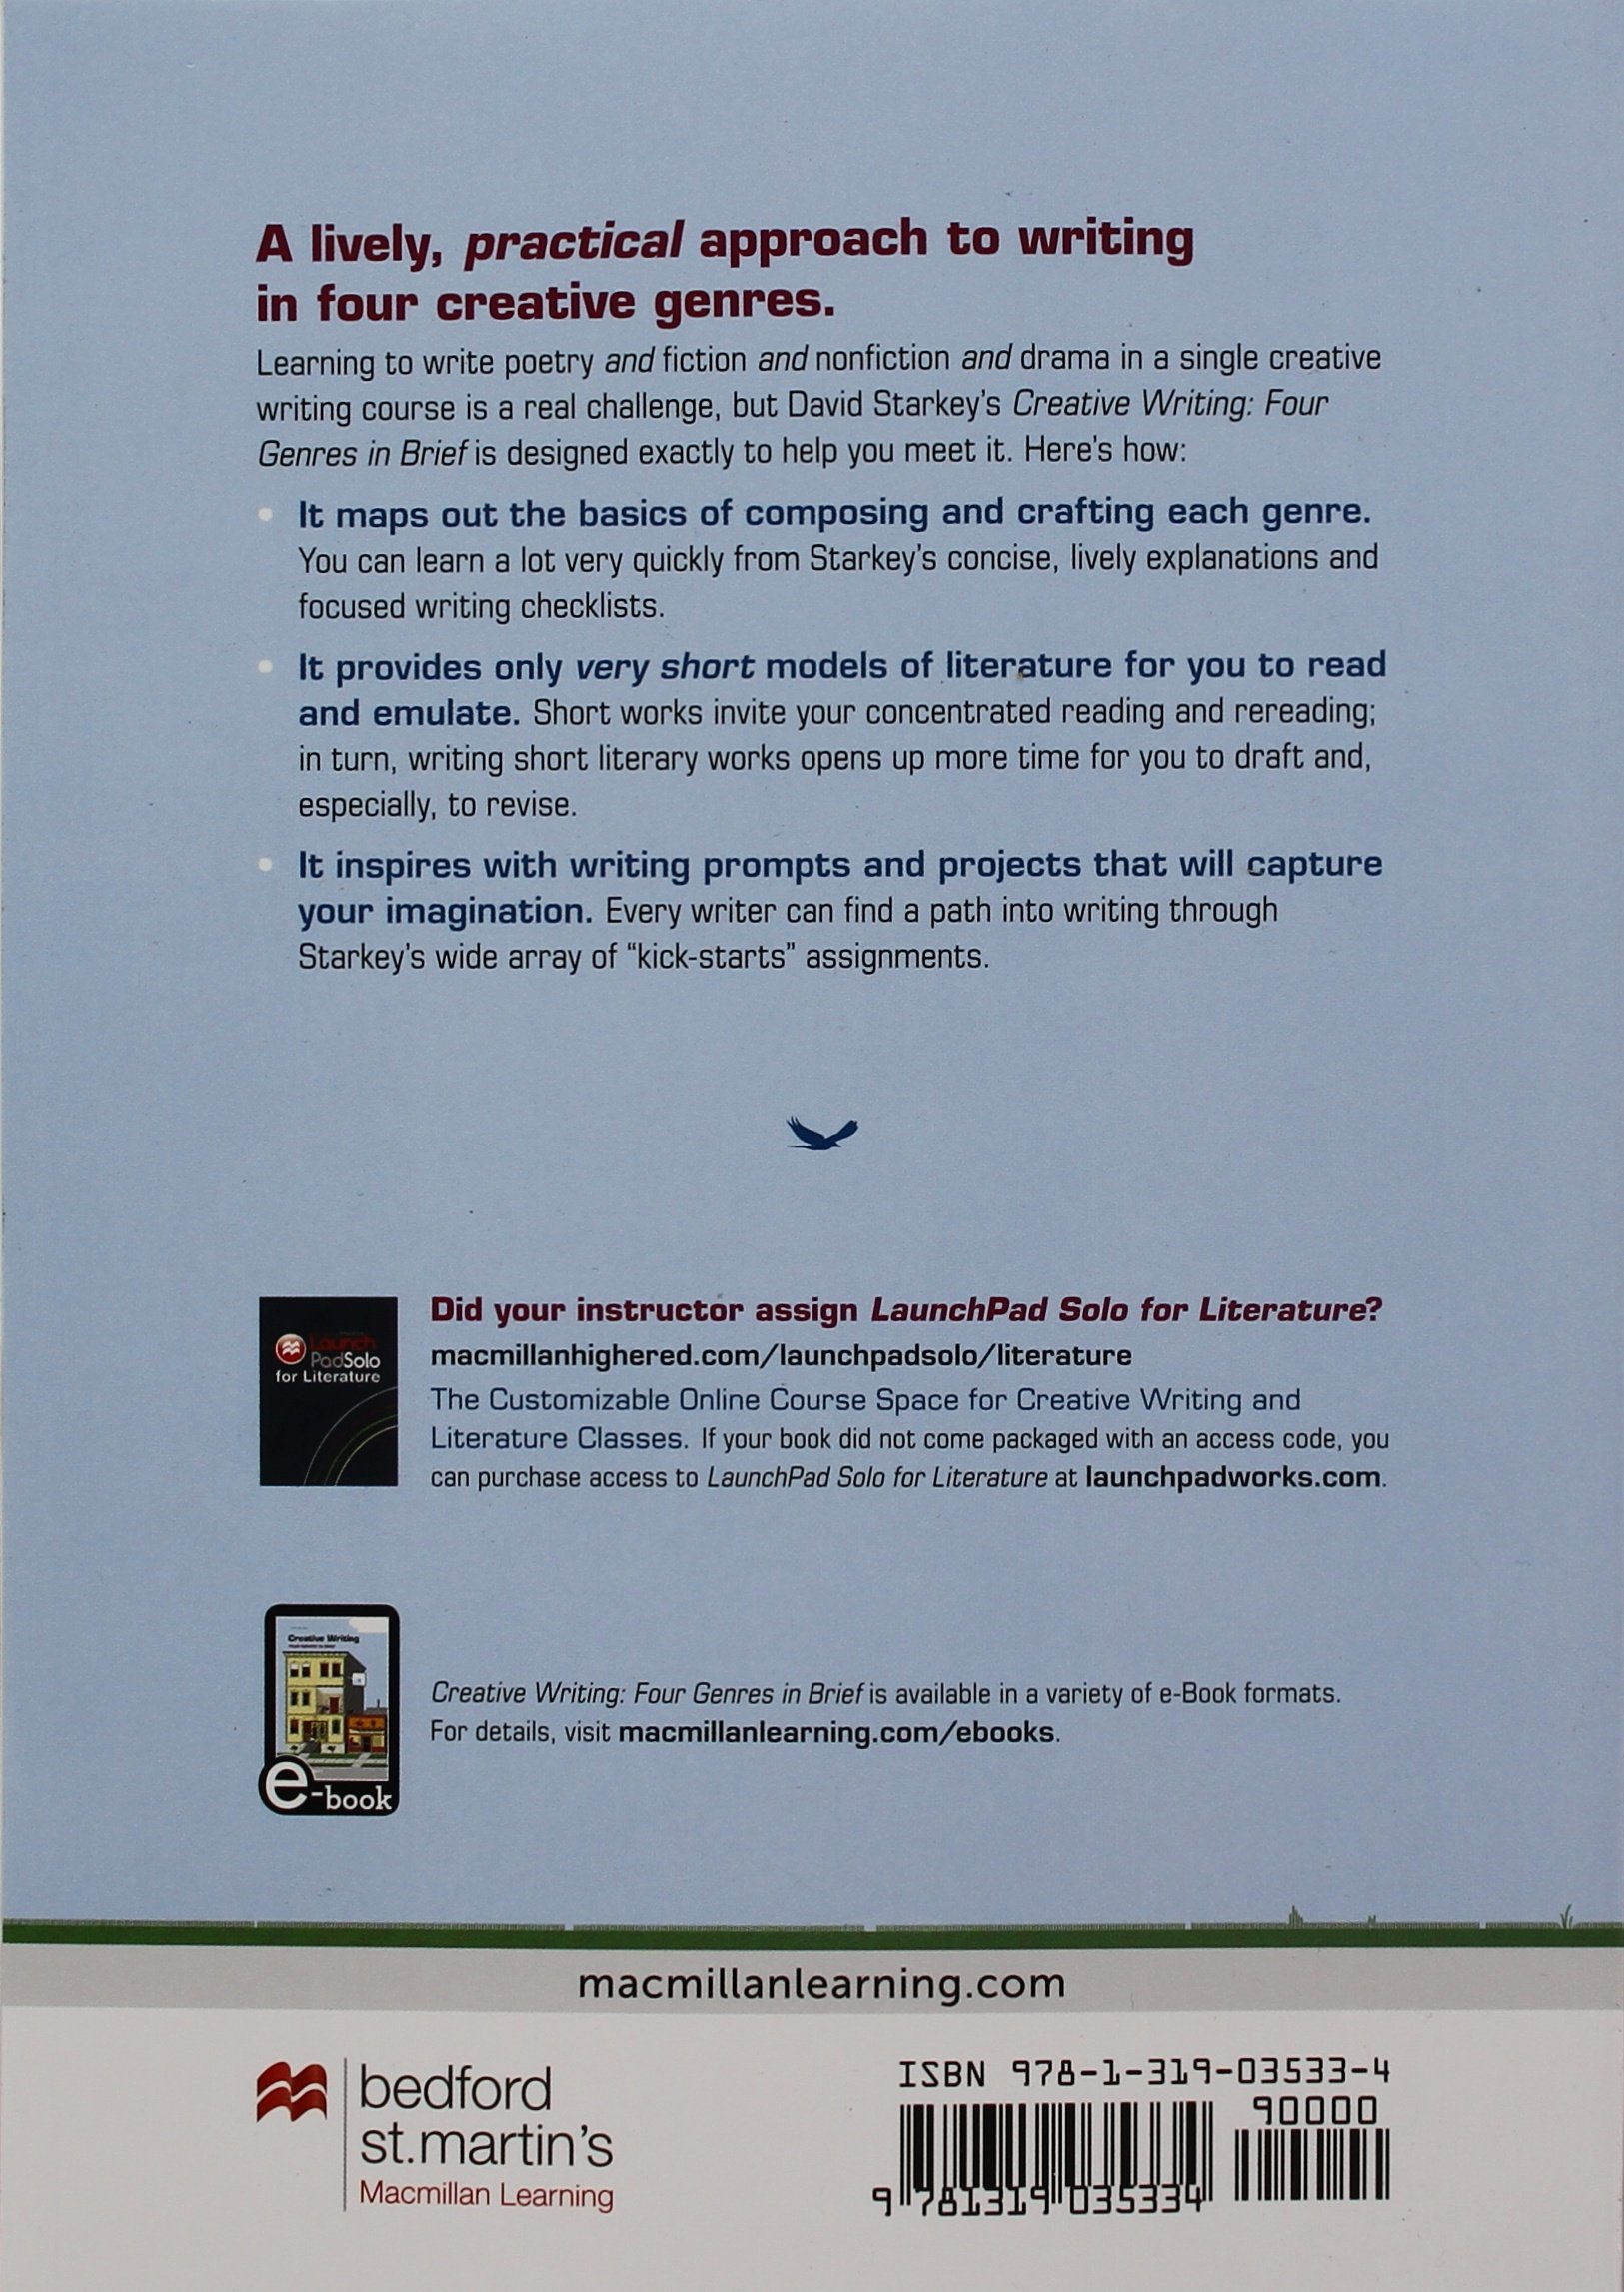 instructional design cover letter%0A Amazon com Creative Writing Four Genres in Brief